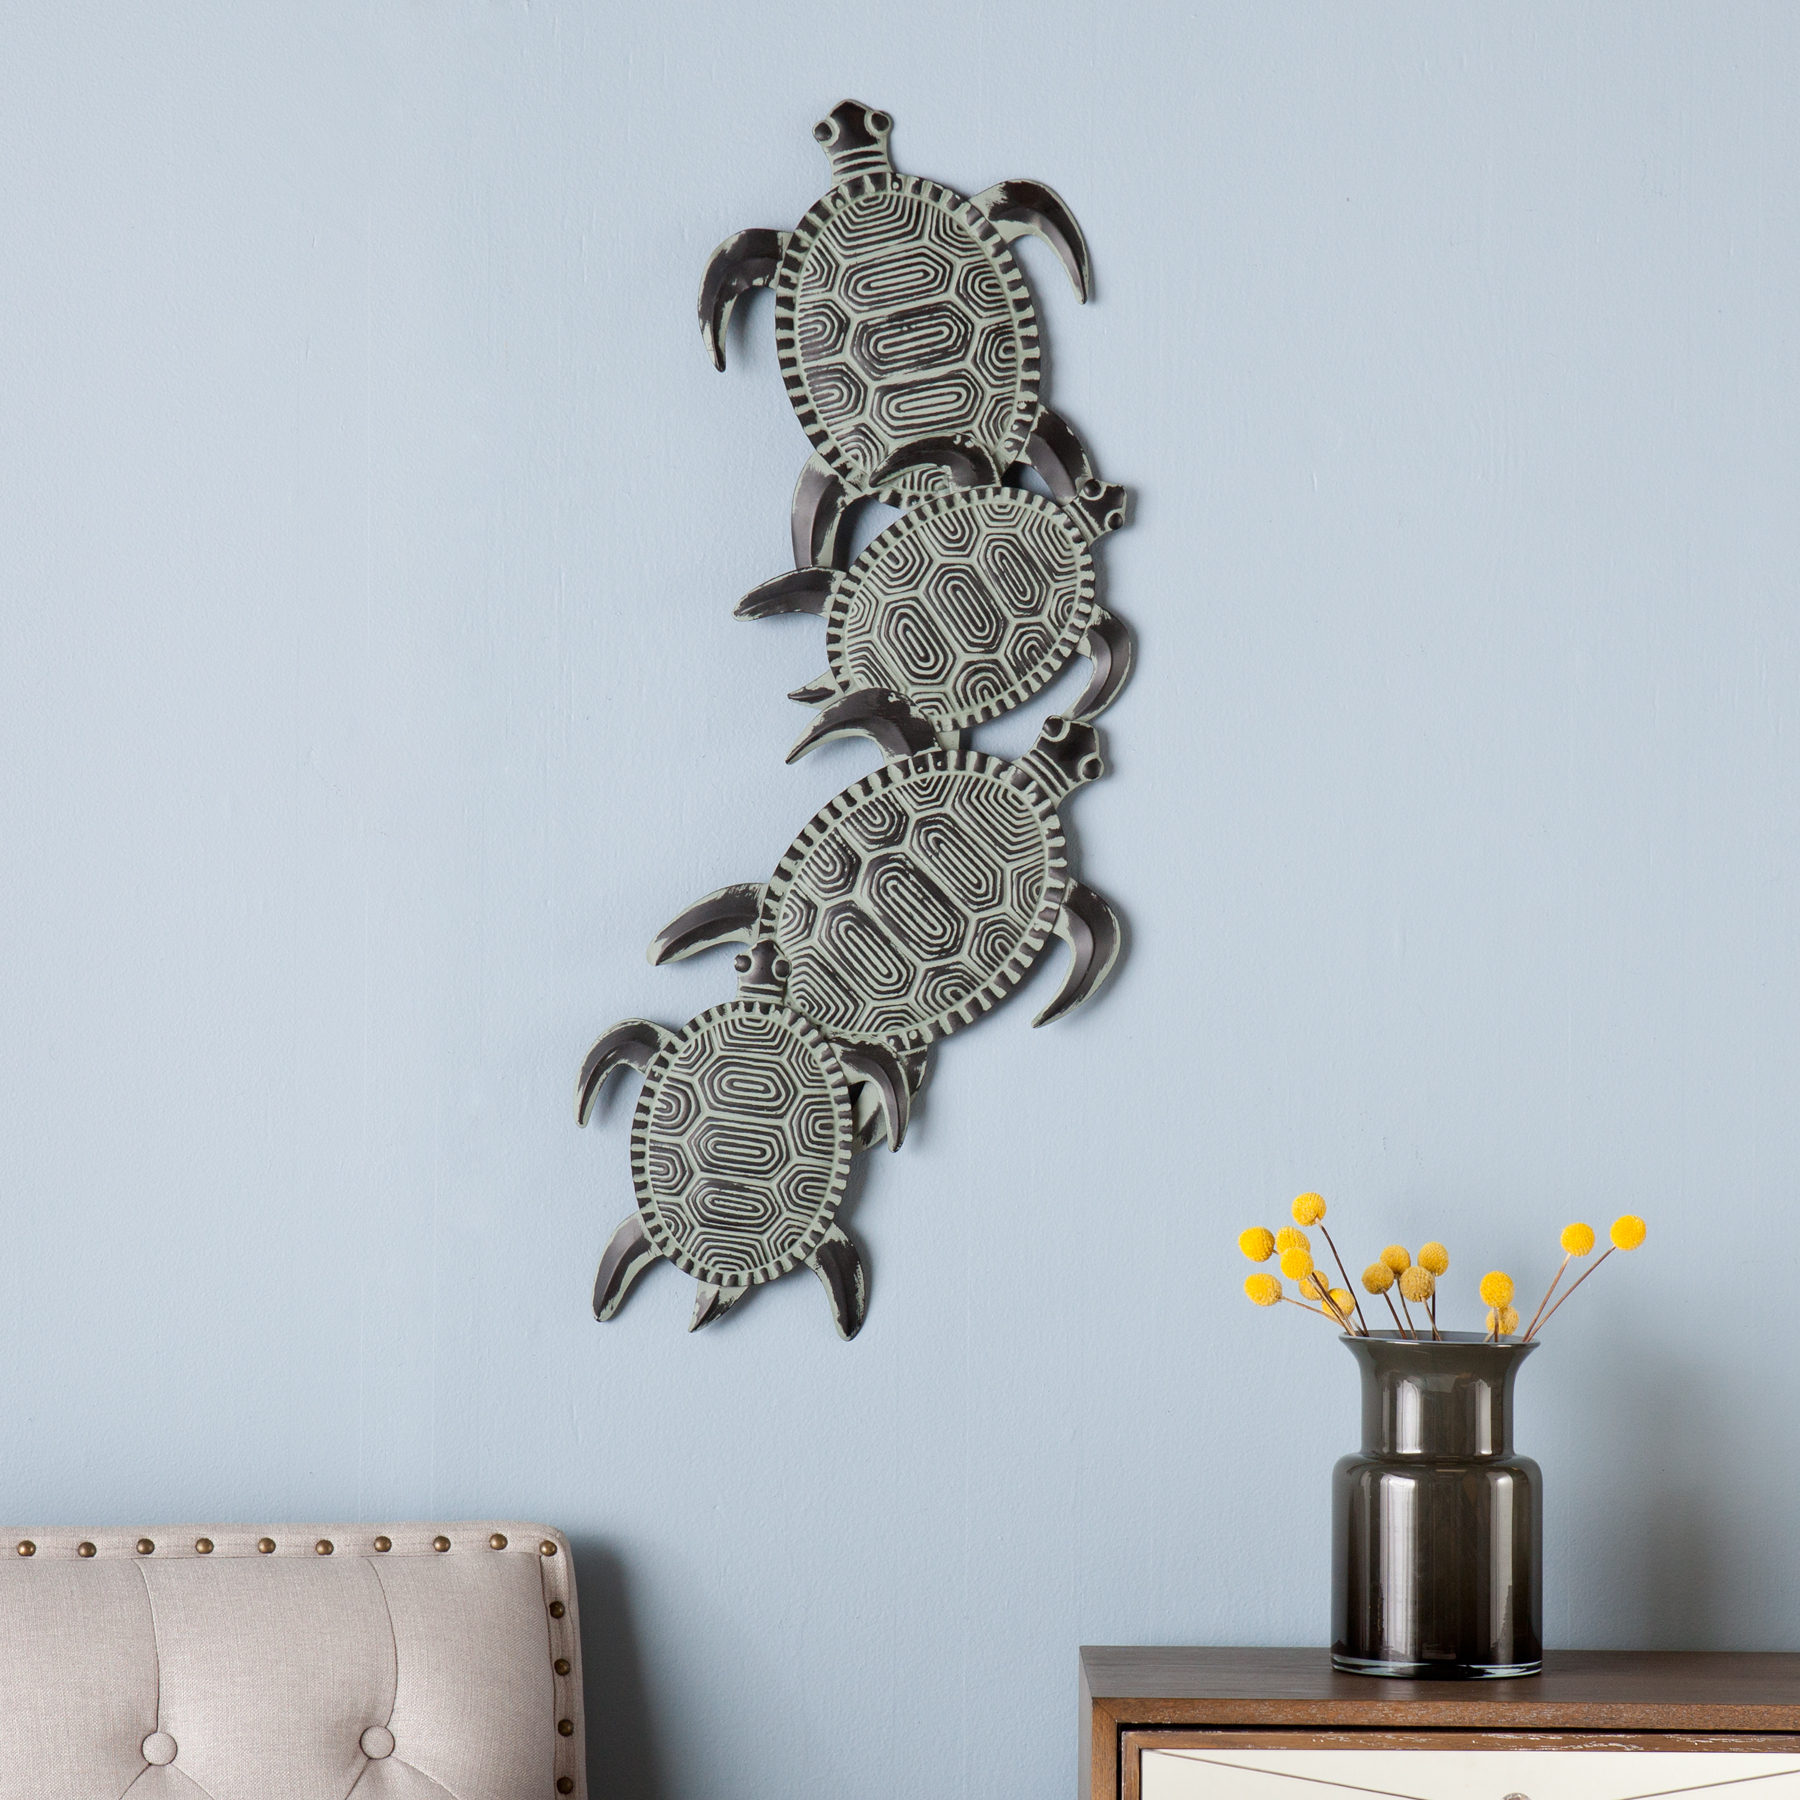 Most Recent Southern Enterprises Metal Turtle Wall Art – Walmart Inside Rhys Turtle Decor Wall Decor (View 6 of 20)